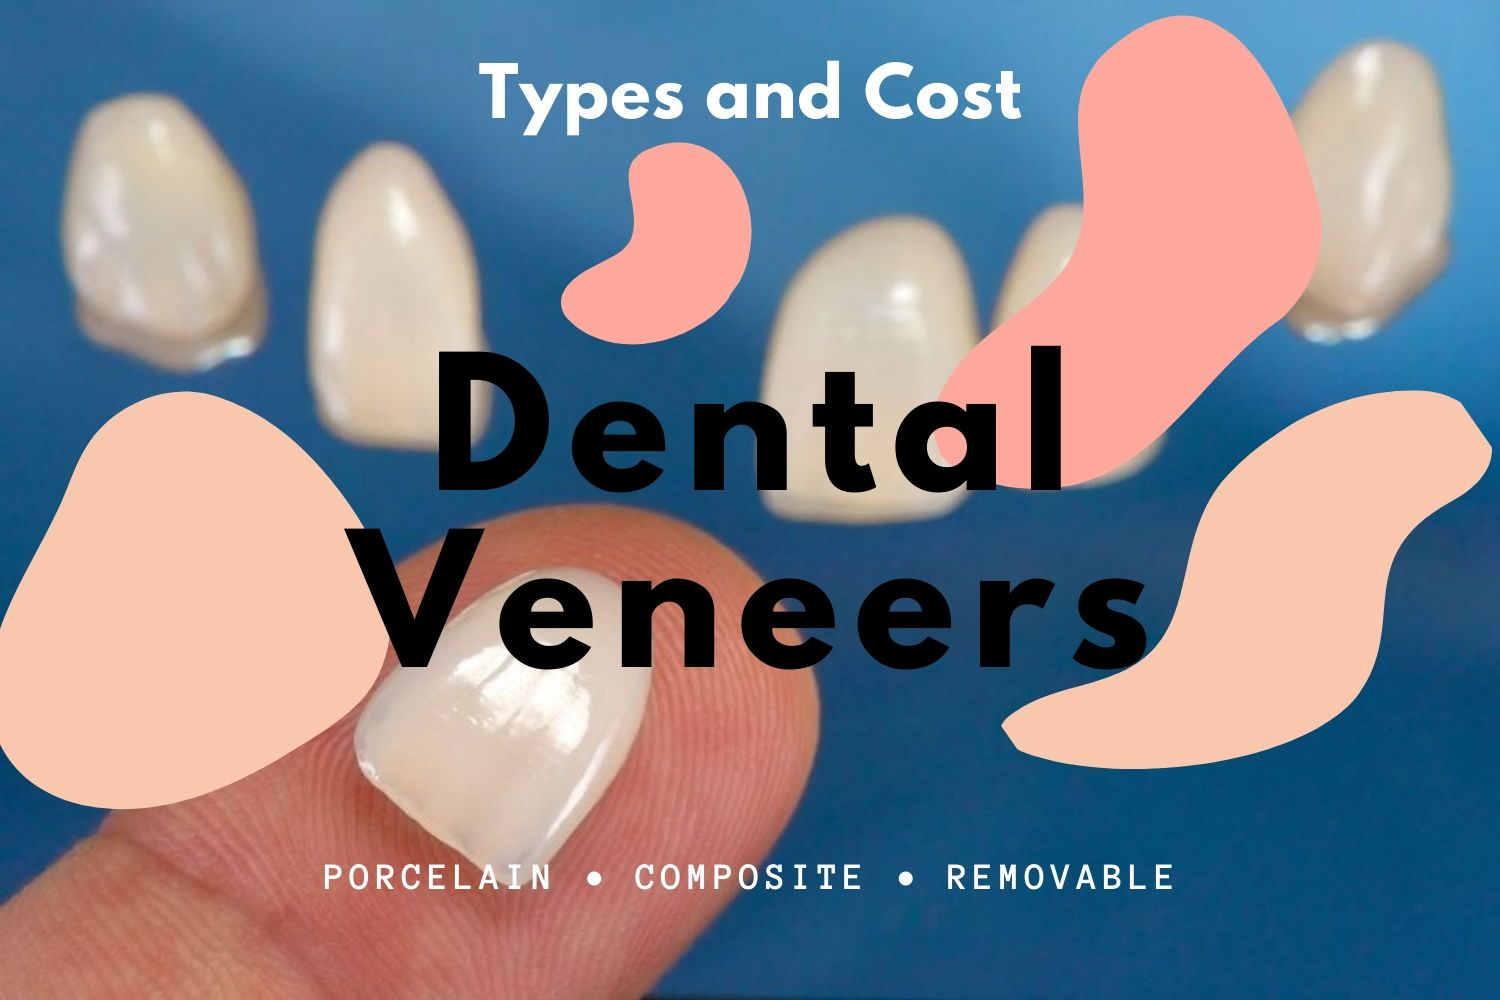 Types of veneers and cost